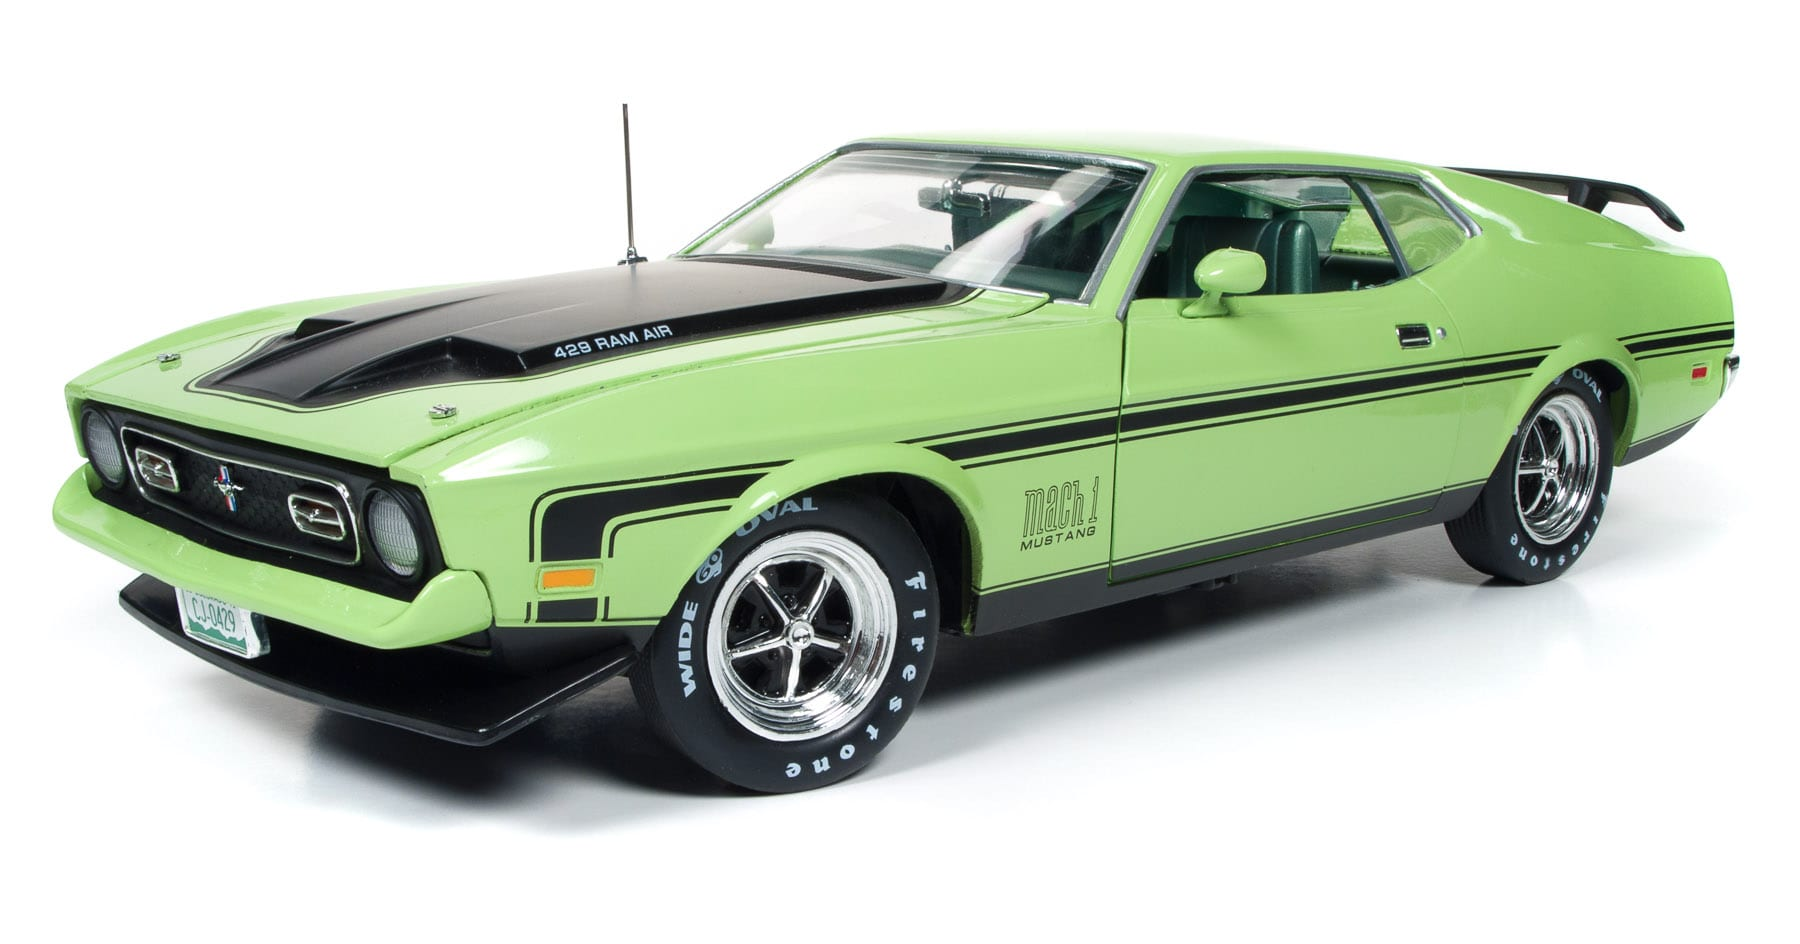 1971 Ford Mustang Mach 1 in addition Cac newparts also Fast Furious 7 Meet The Metal further Muscle Car Wallpapers additionally 1967 CHEVROLET CAMARO CUSTOM 2 DOOR COUPE 94038. on 1967 camaro muscle car